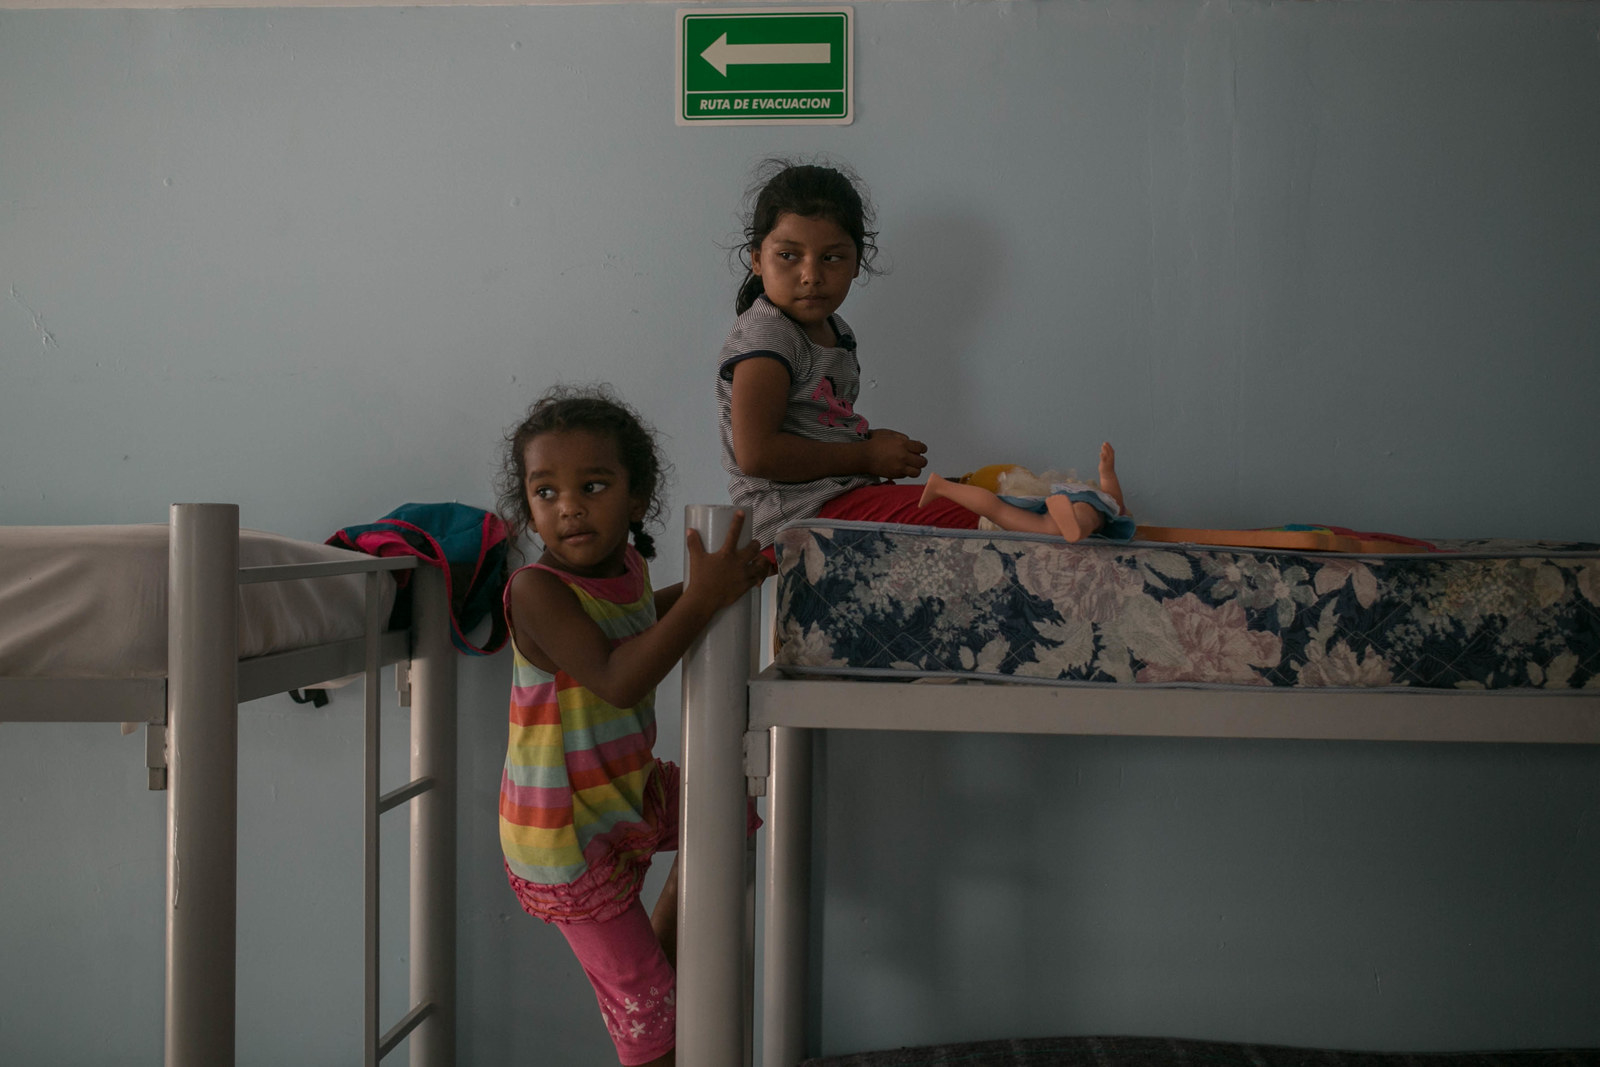 Claudia's daughter, 6, and Piedad's daughter, 3, play with toys on a bunk in the shelter where the family is staying.